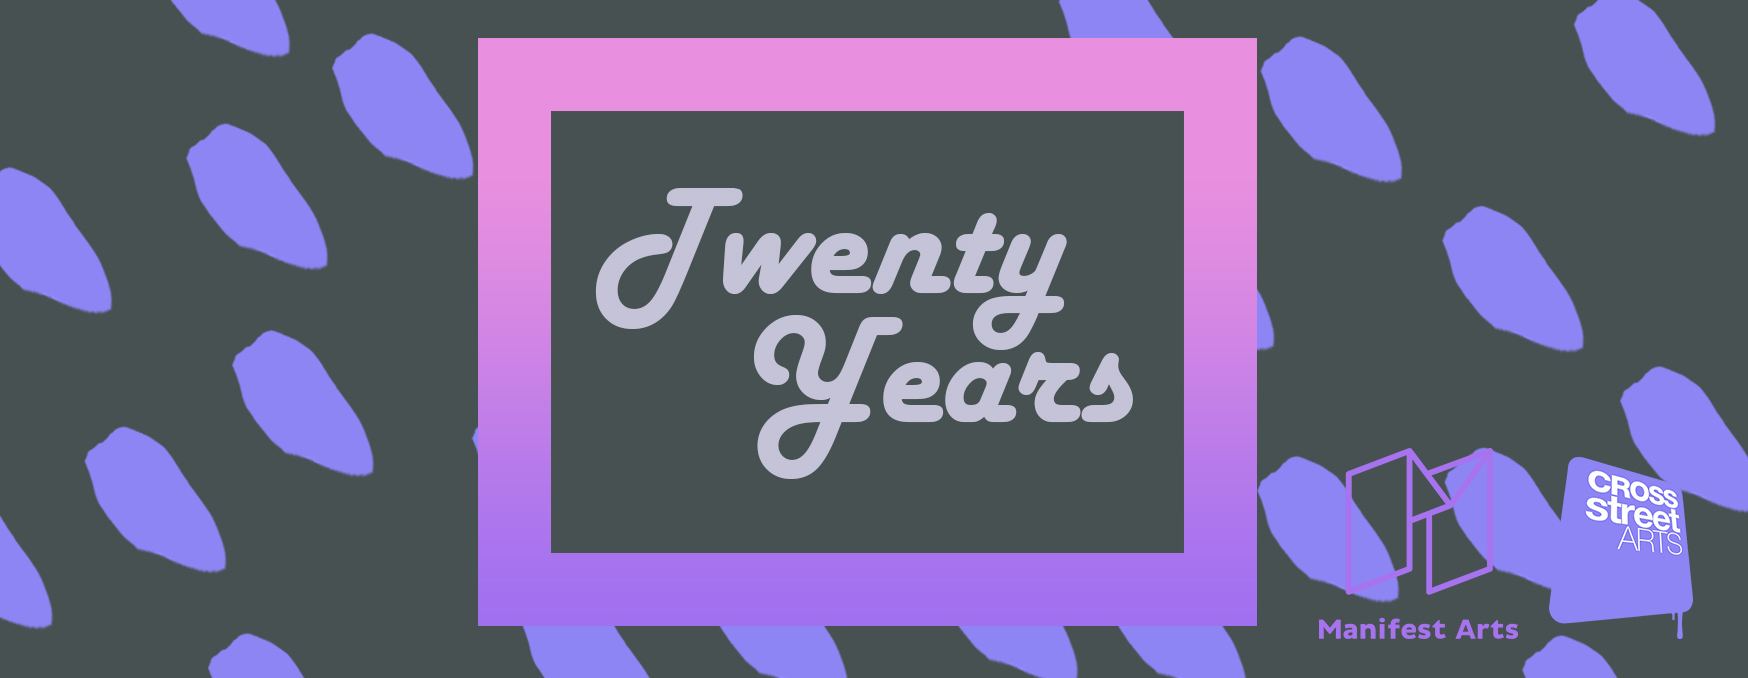 Twenty Years Exhibition